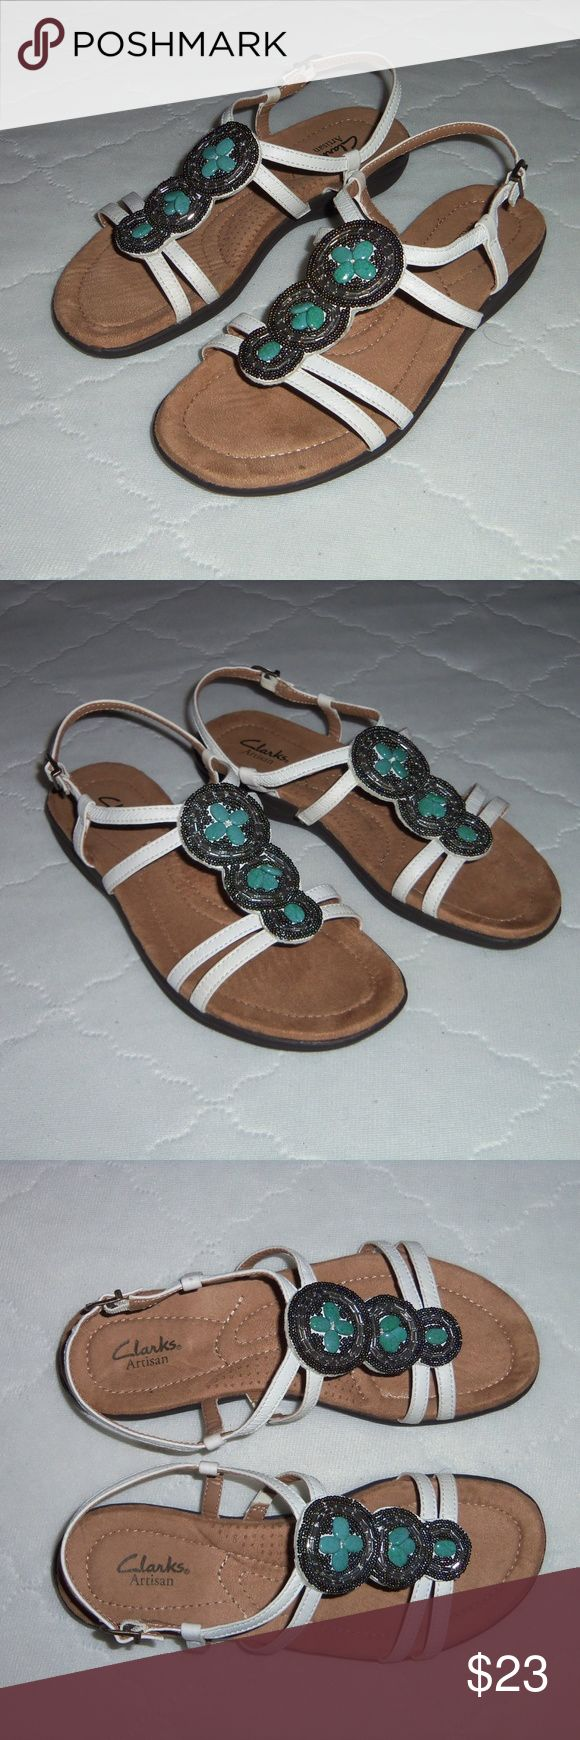 Clarks Artisan leather embellished sandals 7M Very nice pair of Clarks sandals embellished with turquoise looking stones with beading on top. Leather upper comfort foot bed, adjustable ankle straps. Excellent condition! View all pictures! Clarks Shoes Sandals